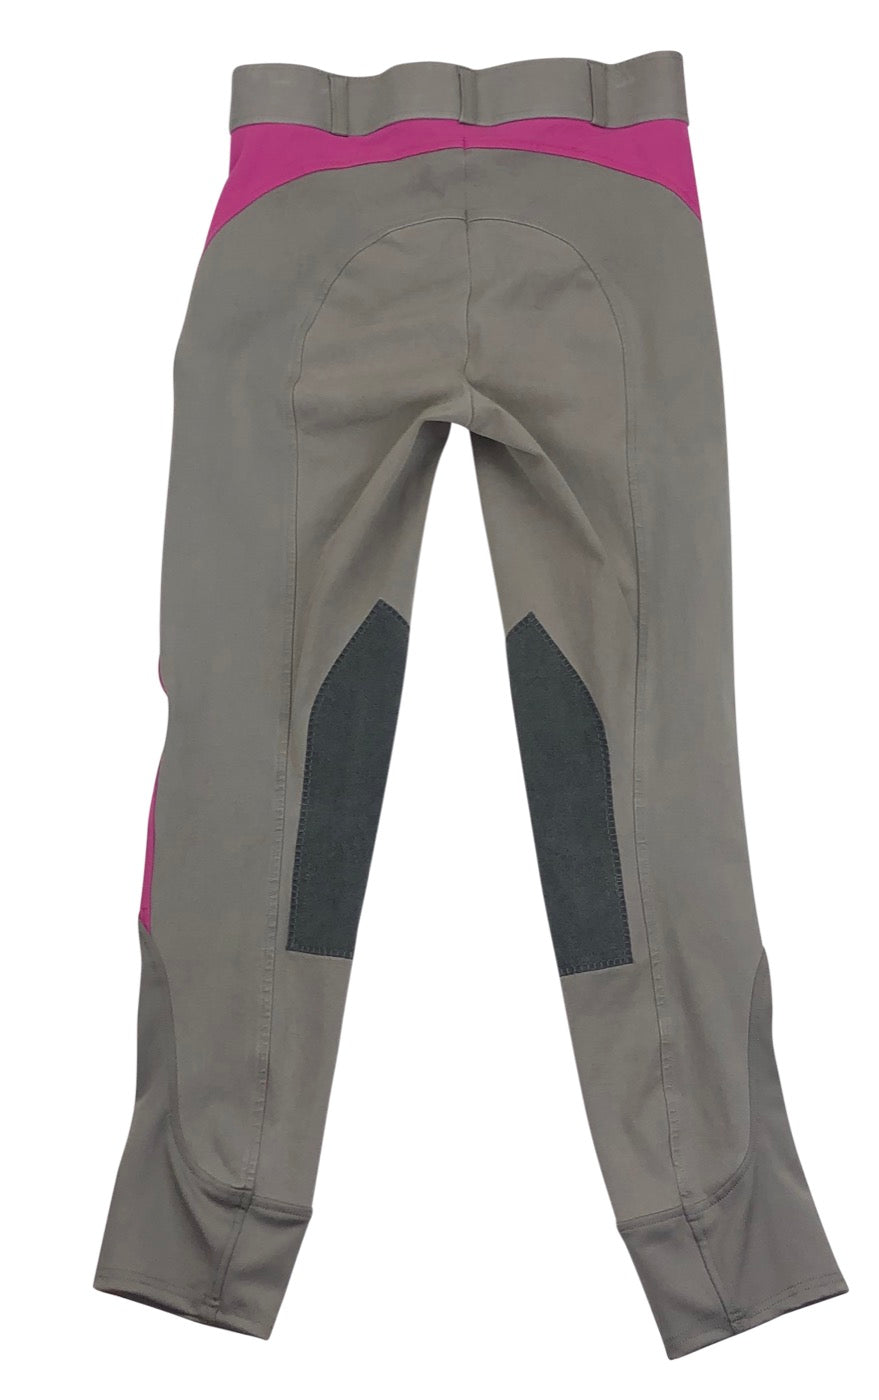 Back of Dover Saddlery Knee Patch Breeches in Light Grey and Pink